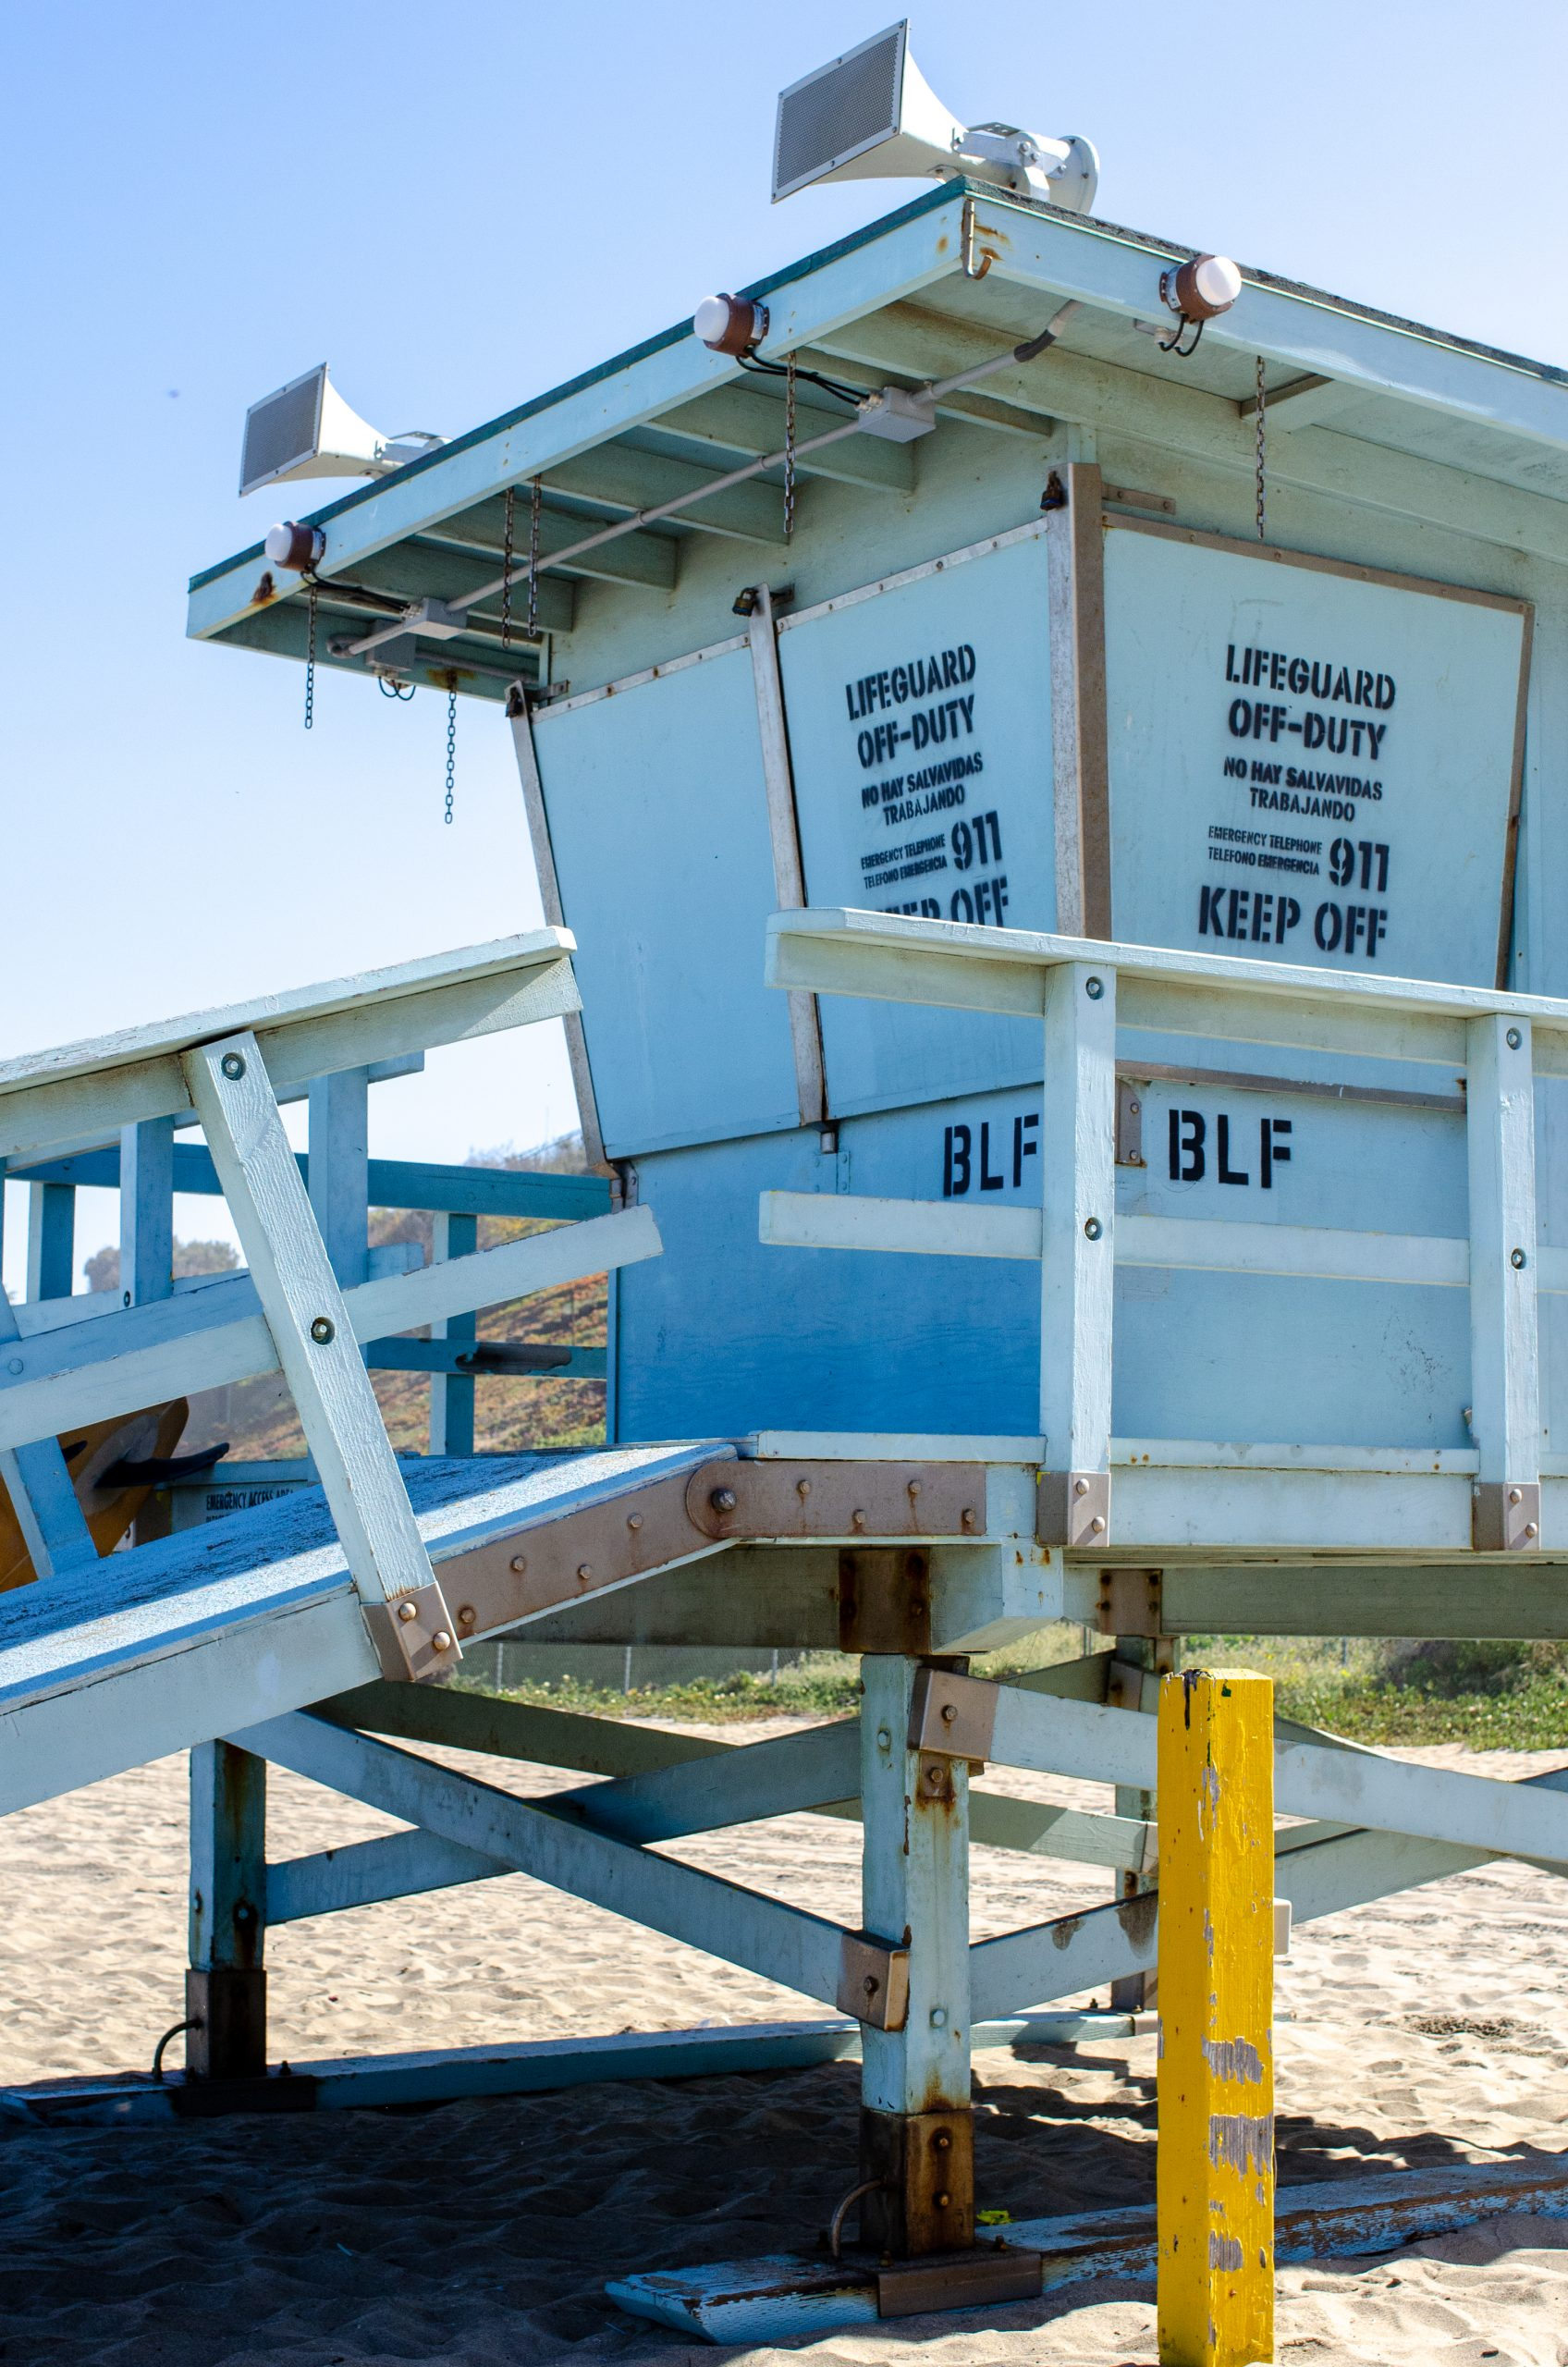 Beach Emergency Evacuation Lights System installed on the Bluff Lifeguard Tower